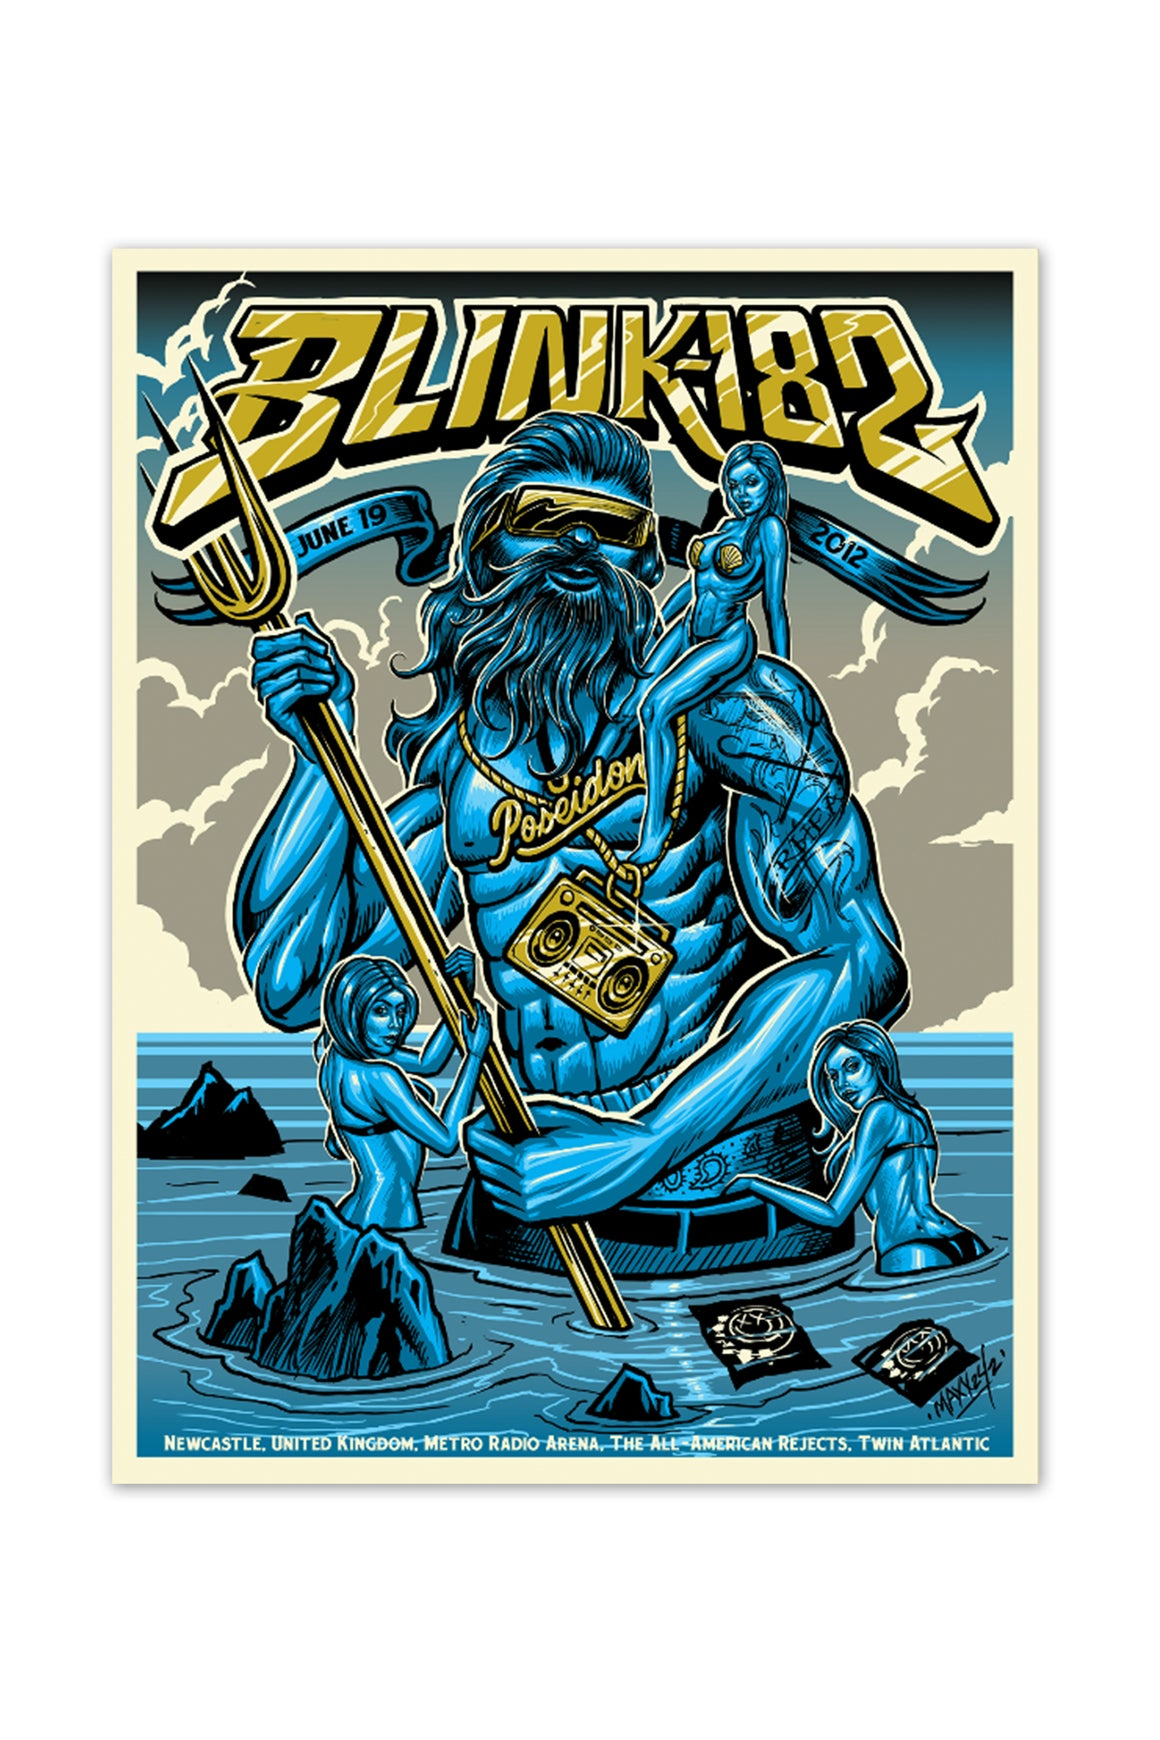 blink-182 6/19/2012 Newcastle, England Event Poster